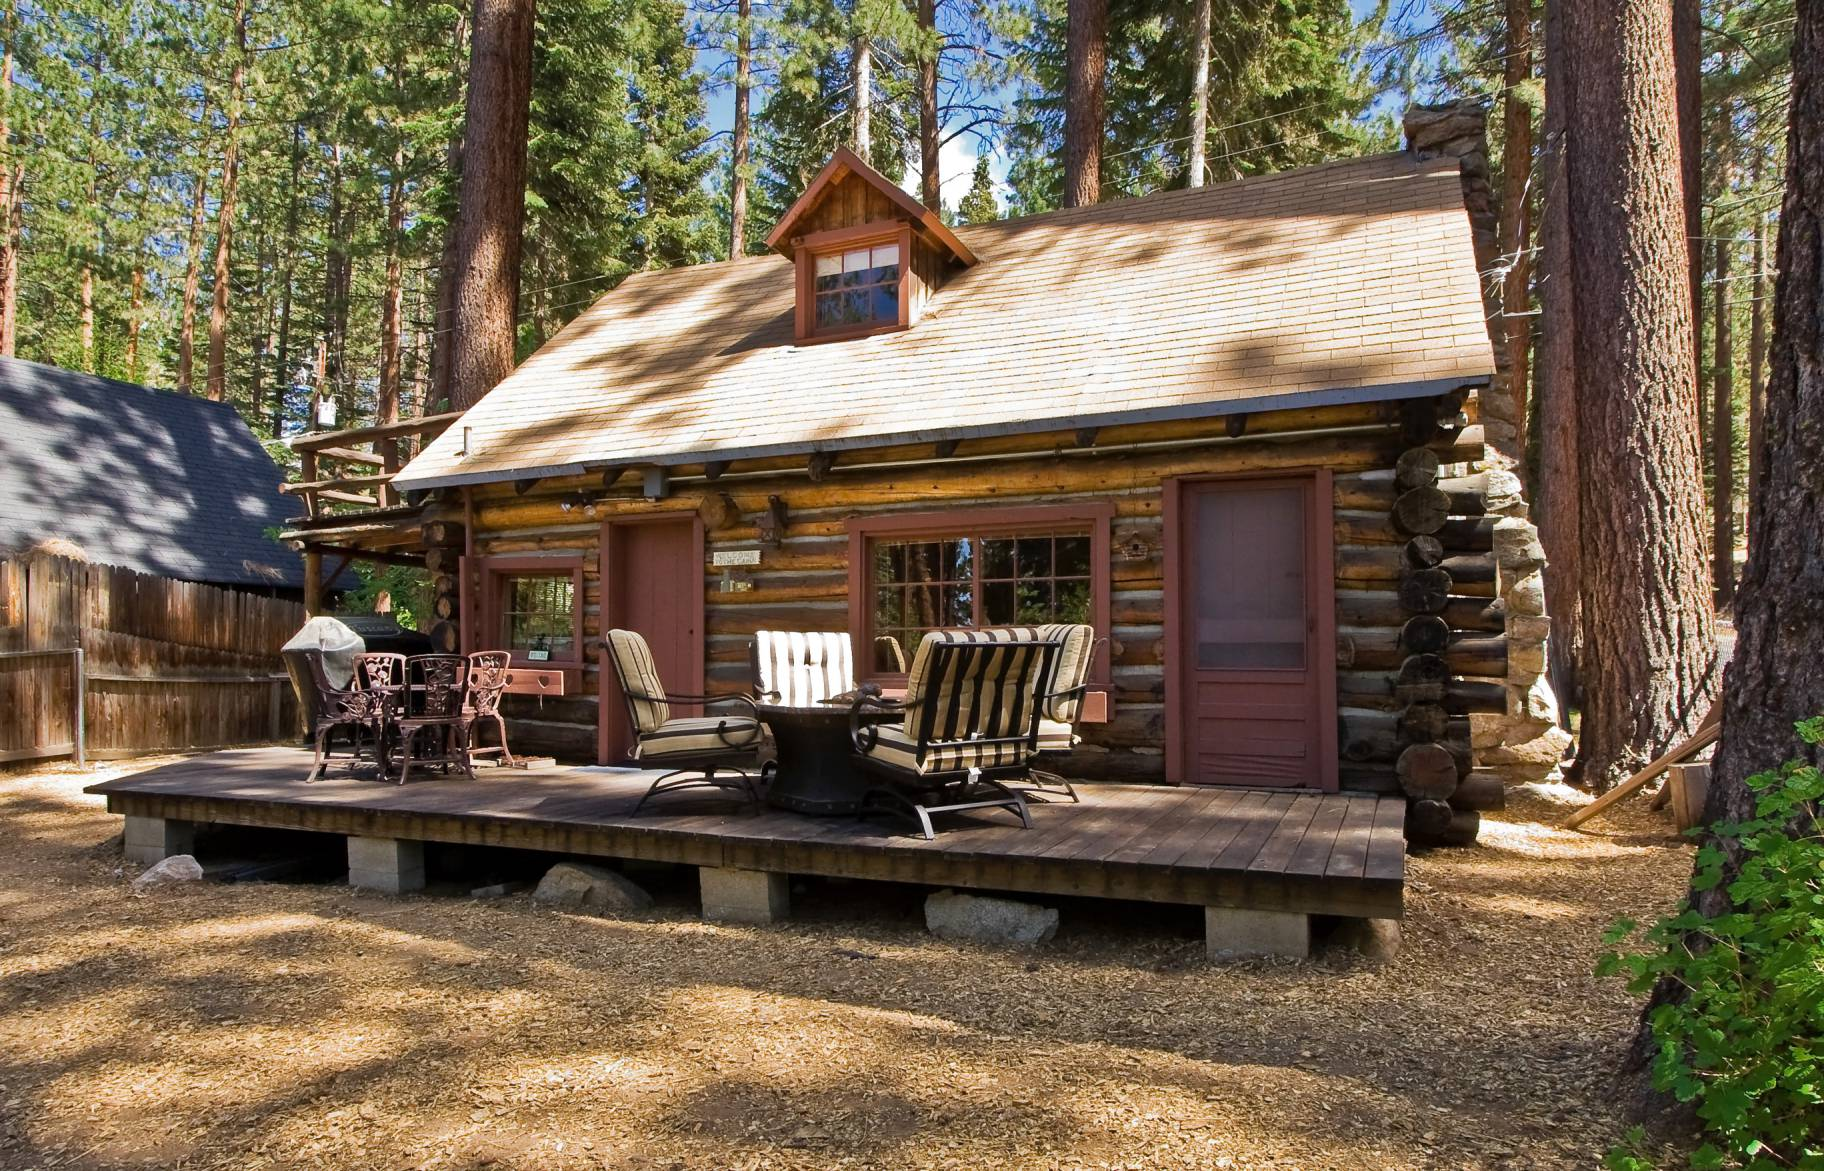 Lake tahoe log cabin small house bliss for Small cabins and cottages